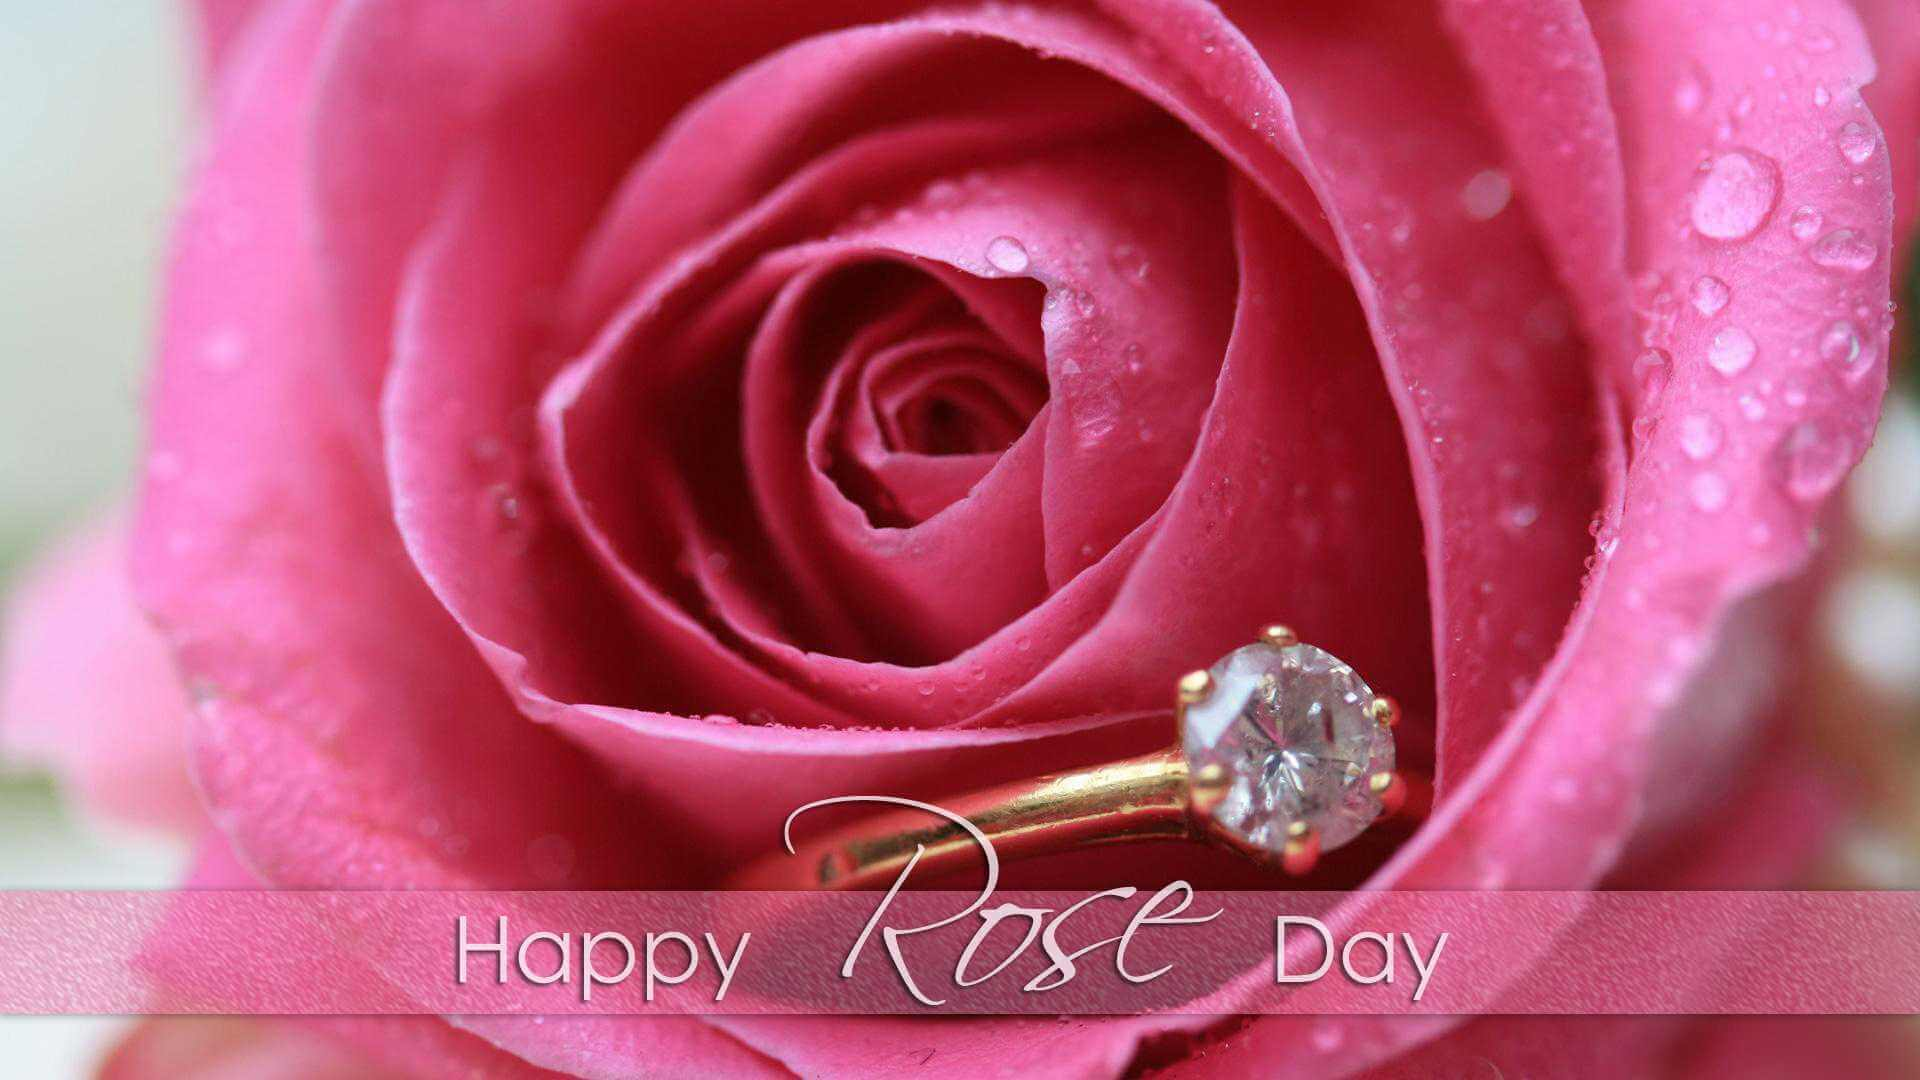 happy rose day wishes water droplets on petals image hd wallpaper